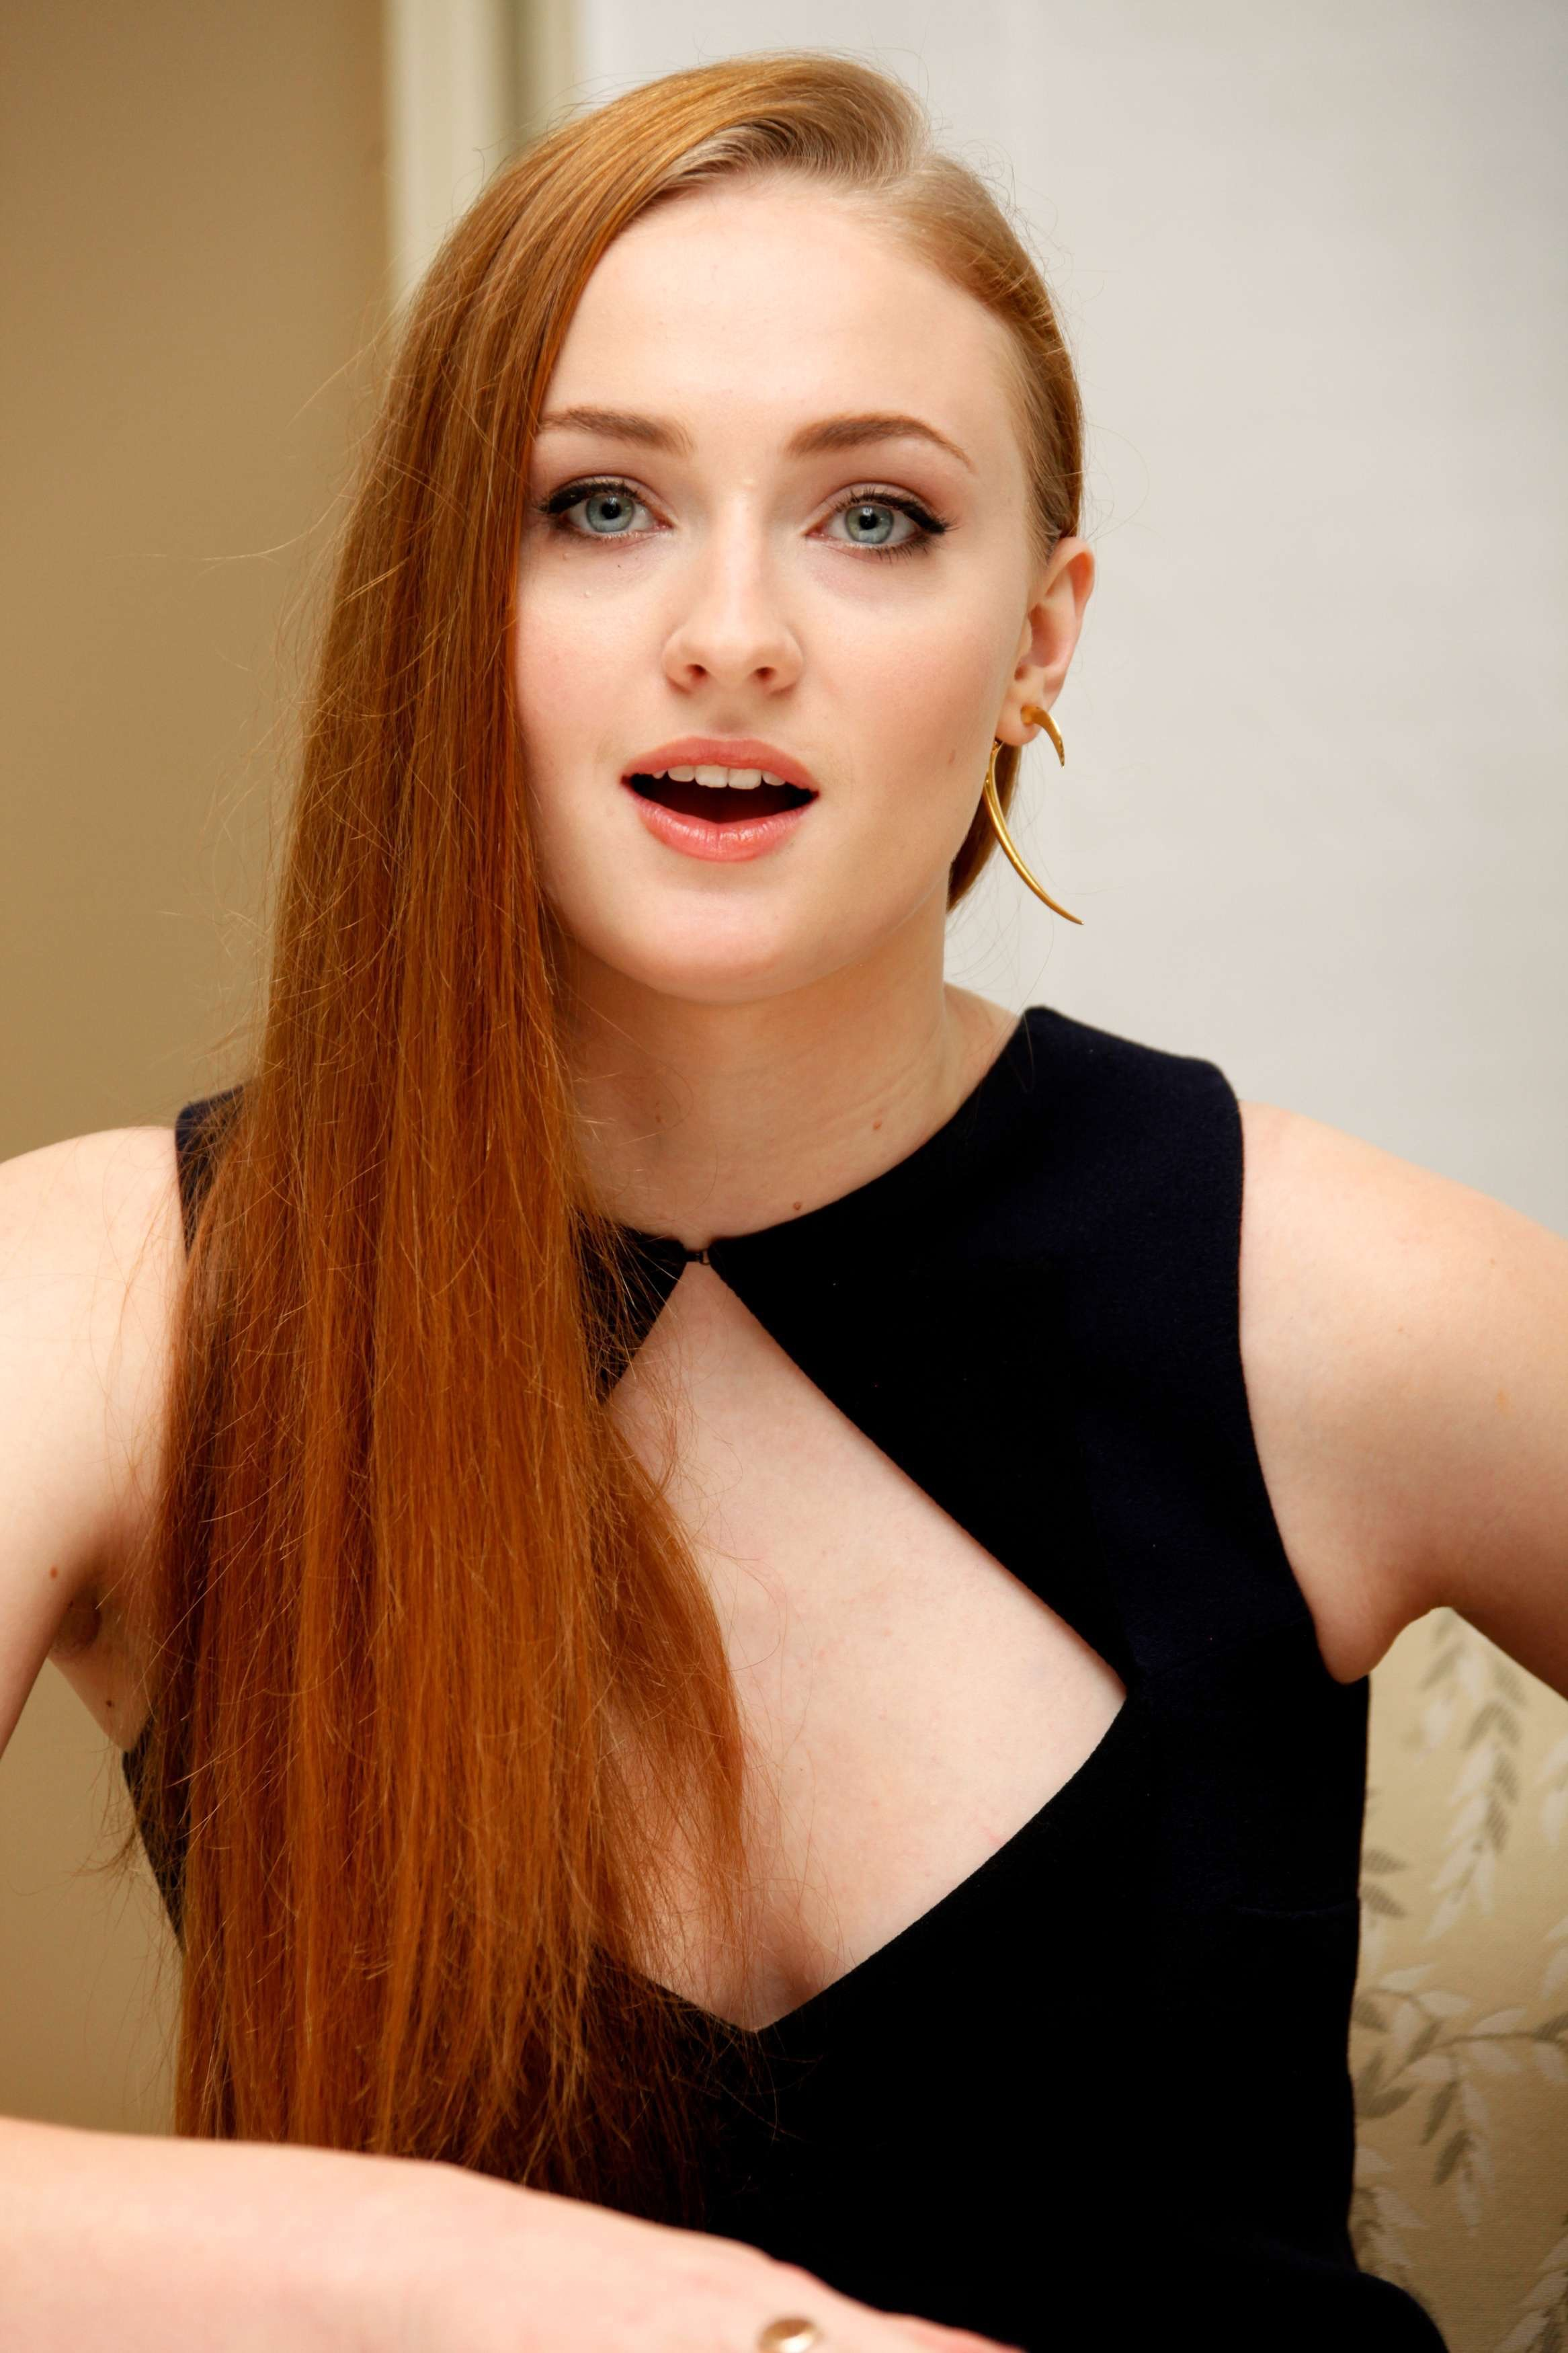 is the miley cyrus sex tape real Not my usual post, no #thong or #ass, but this is #SophieTurner looking LIKE she sees #hugedick or some #bigcock :) #havefun